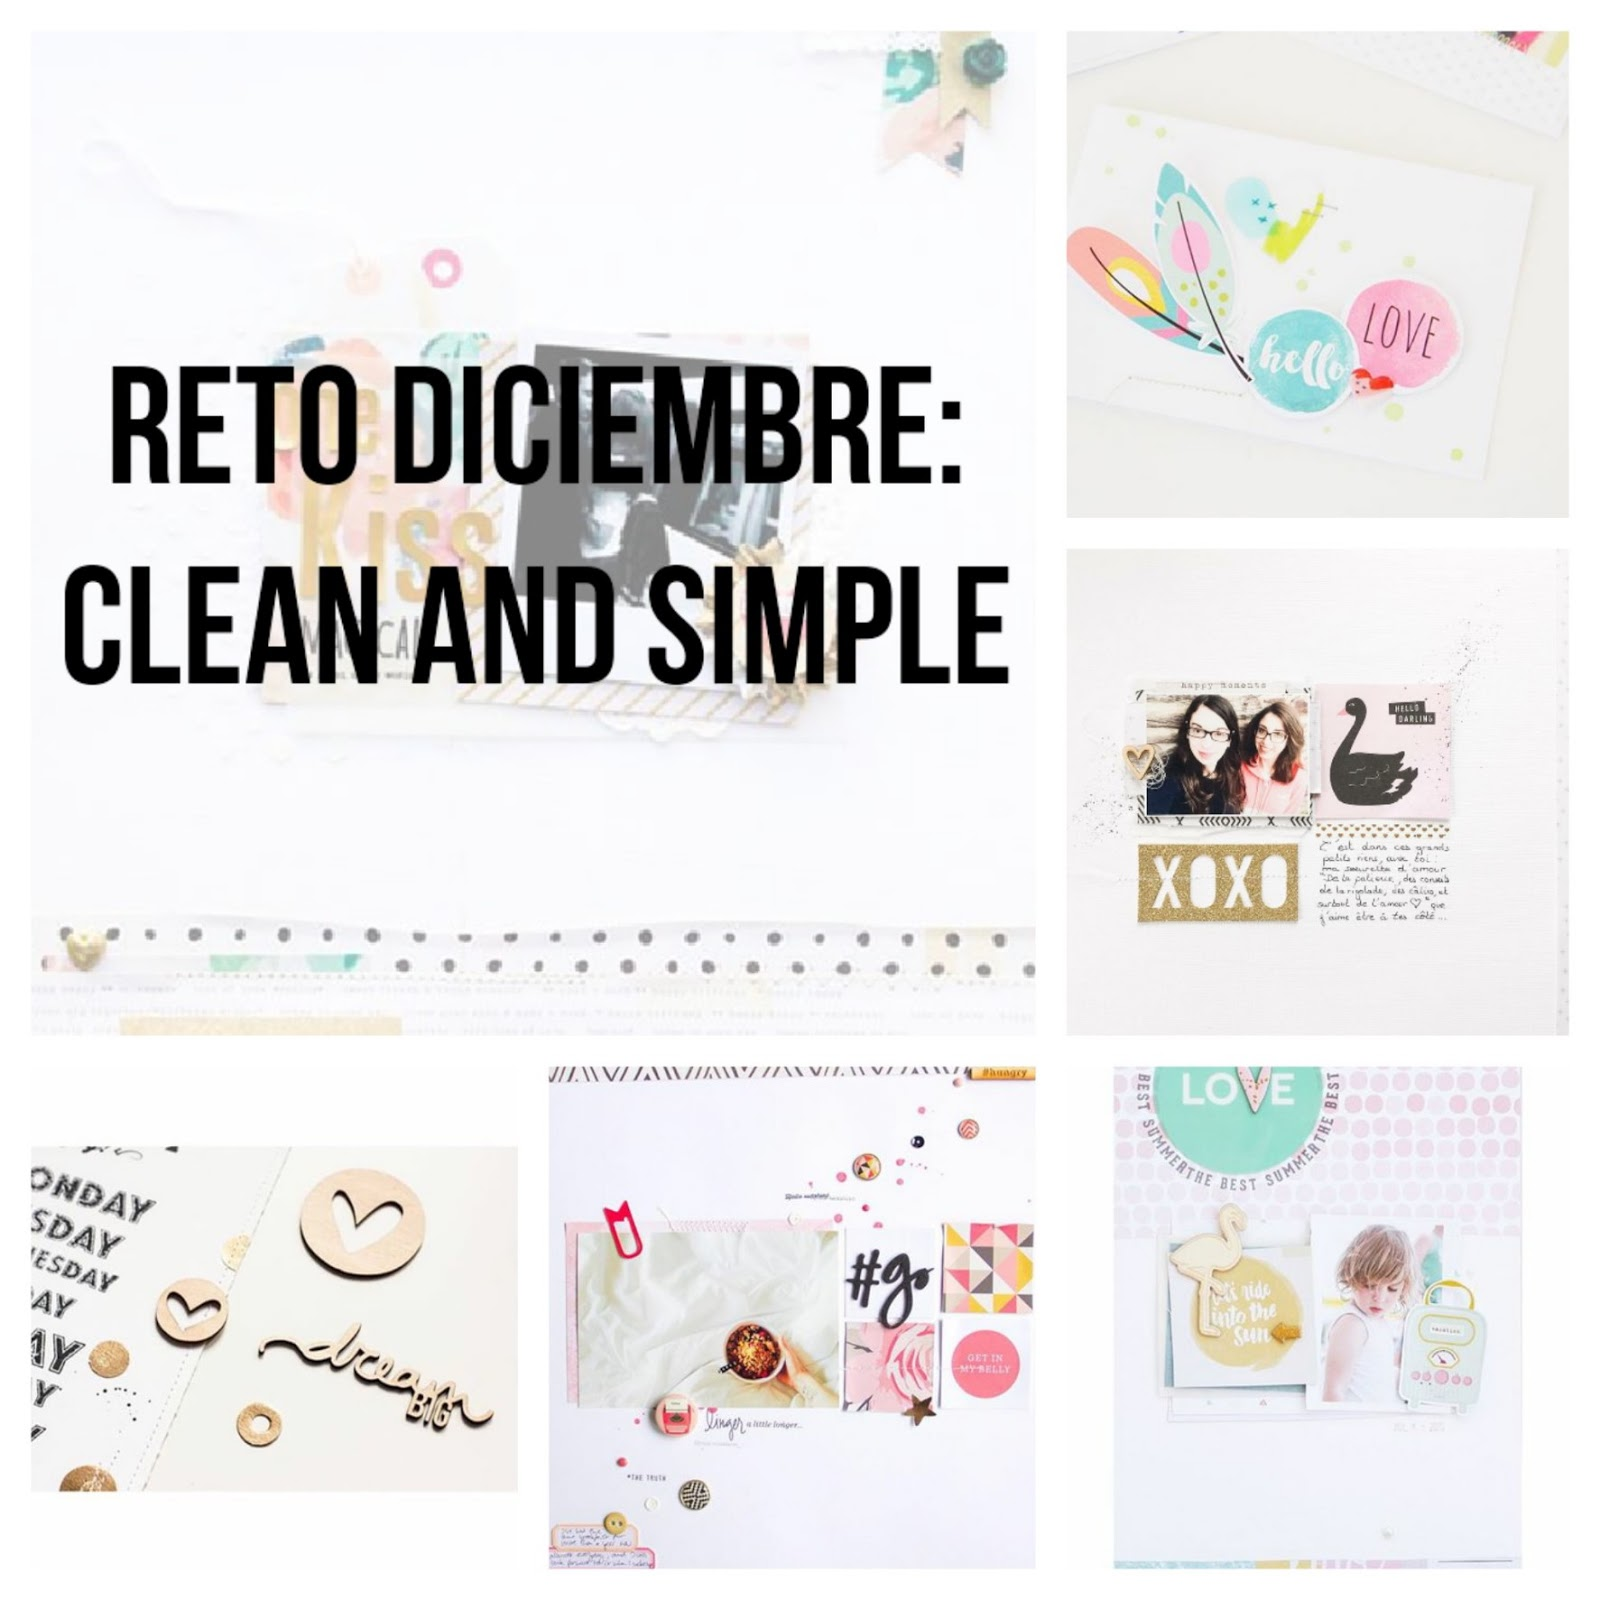 reto_diciembre_clean_and_simple1